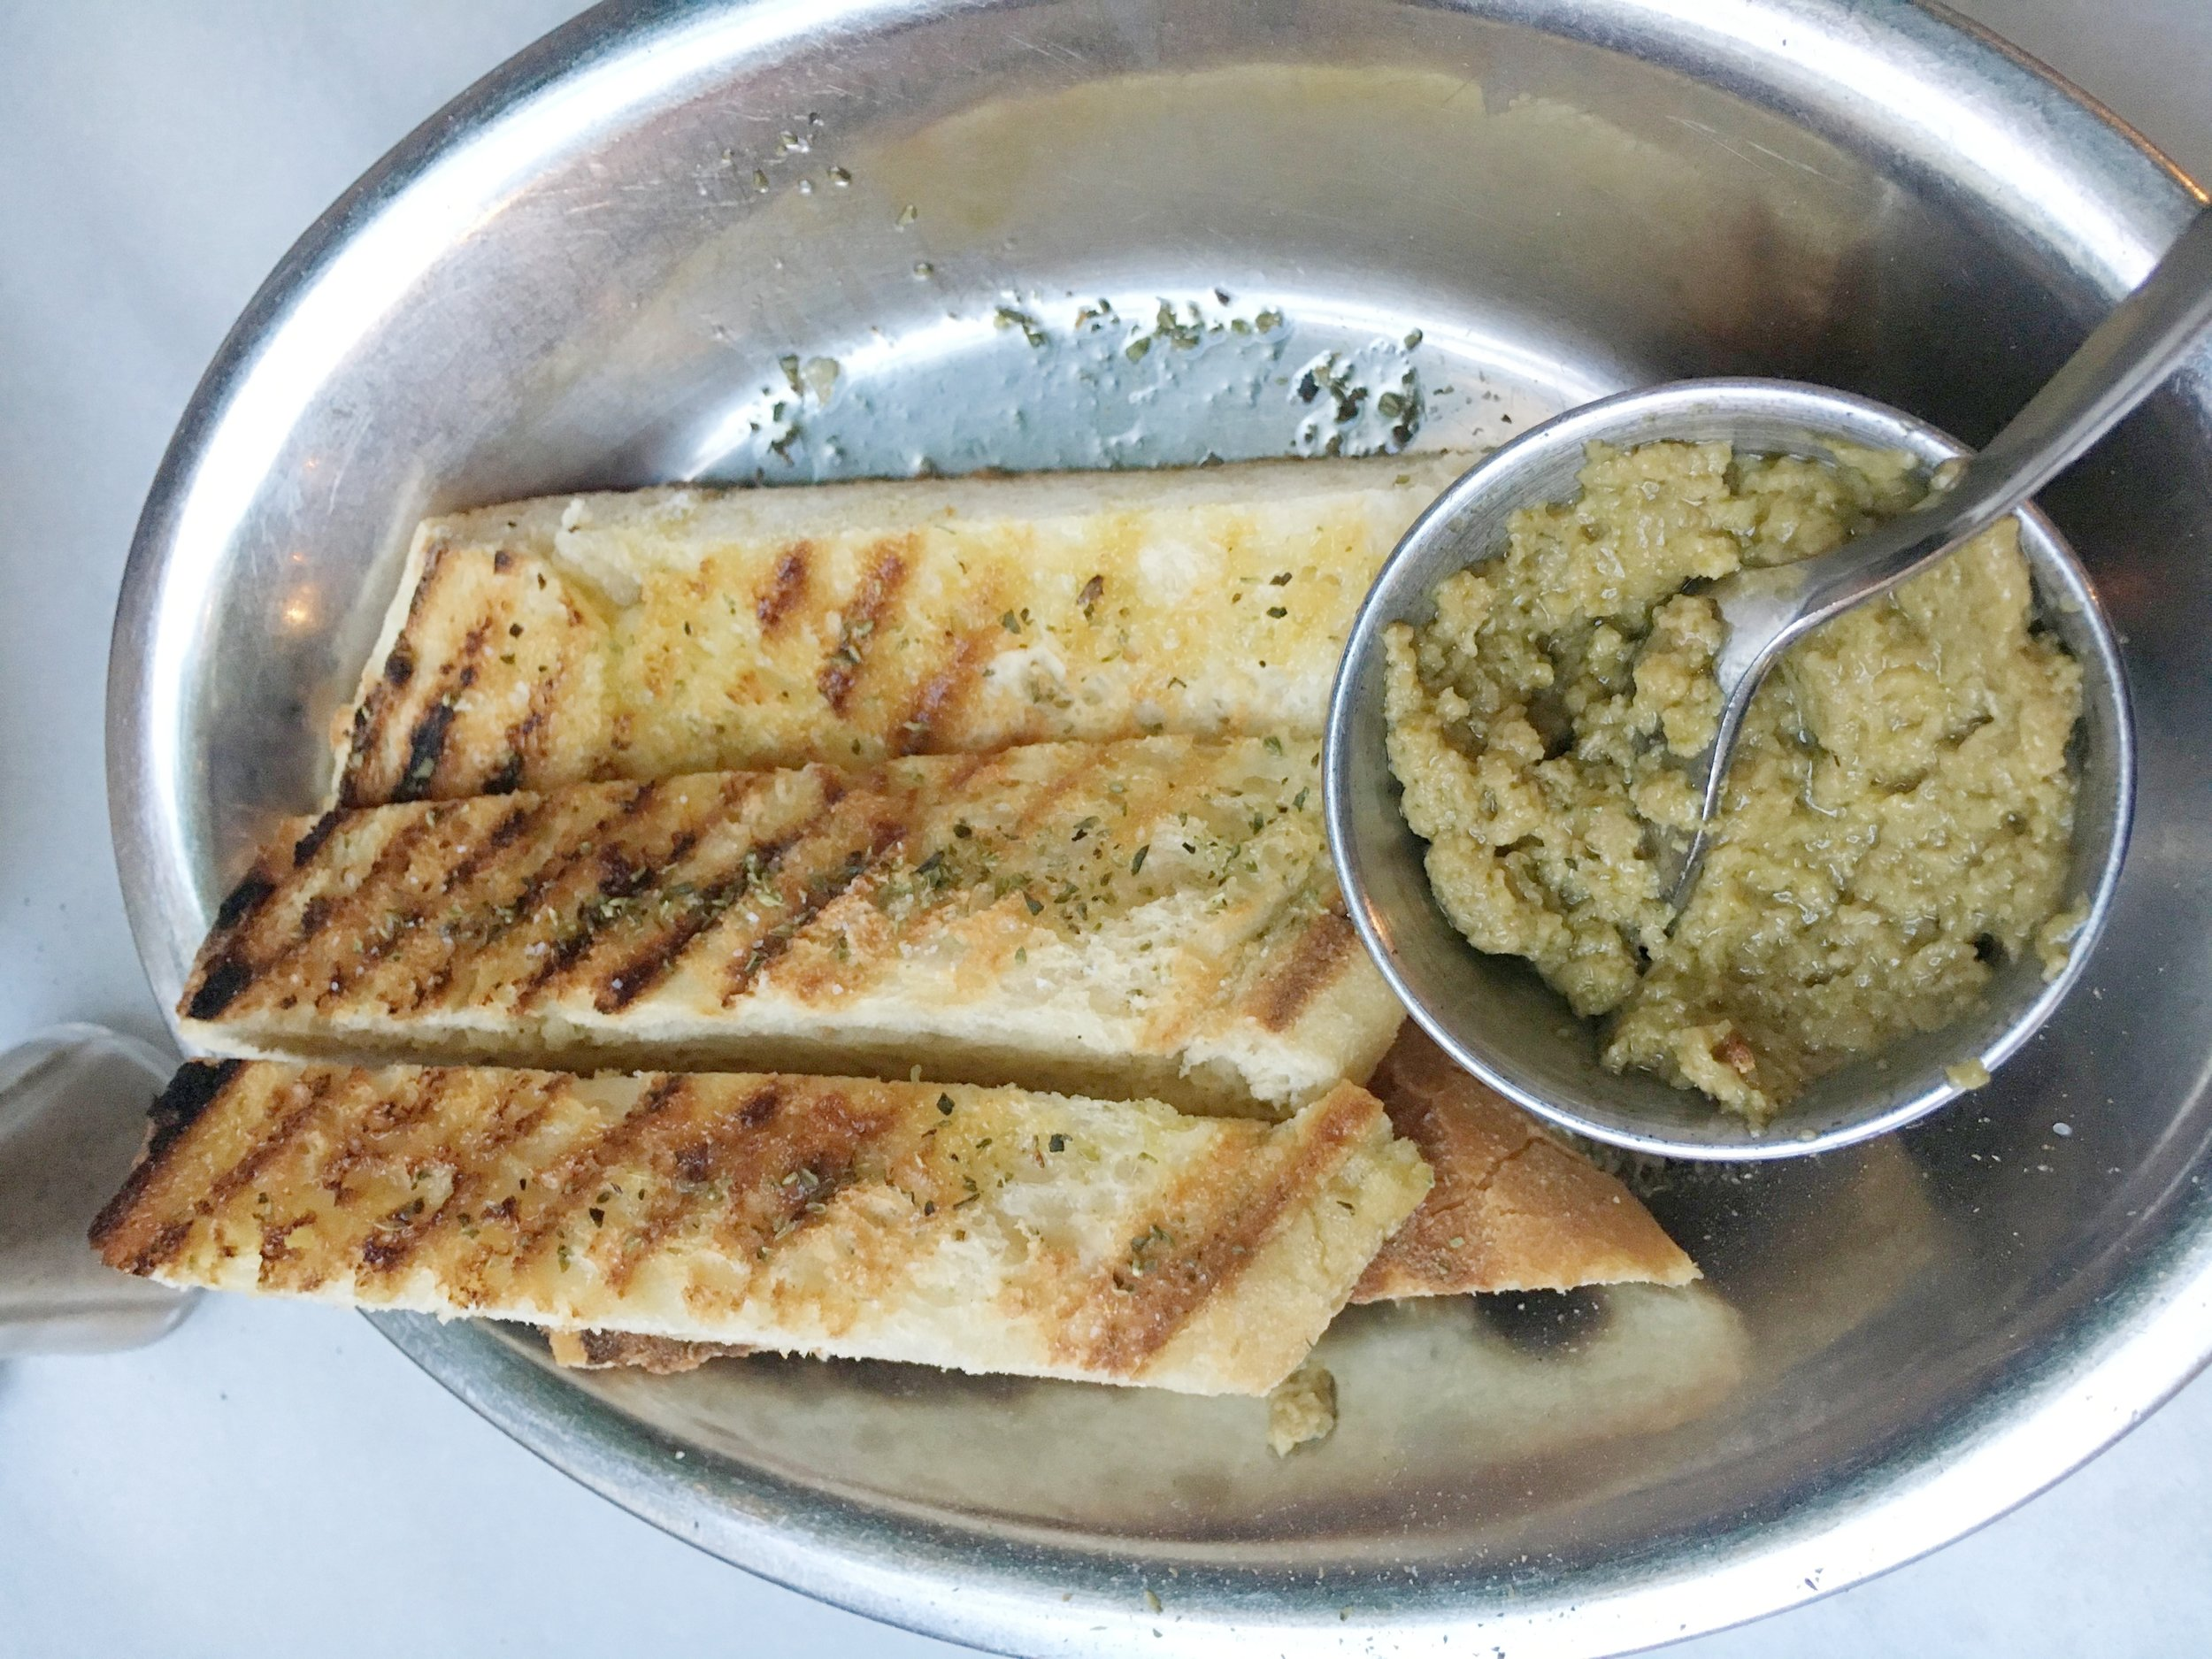 The olive tampanade with olive oil drizzled on the bread.